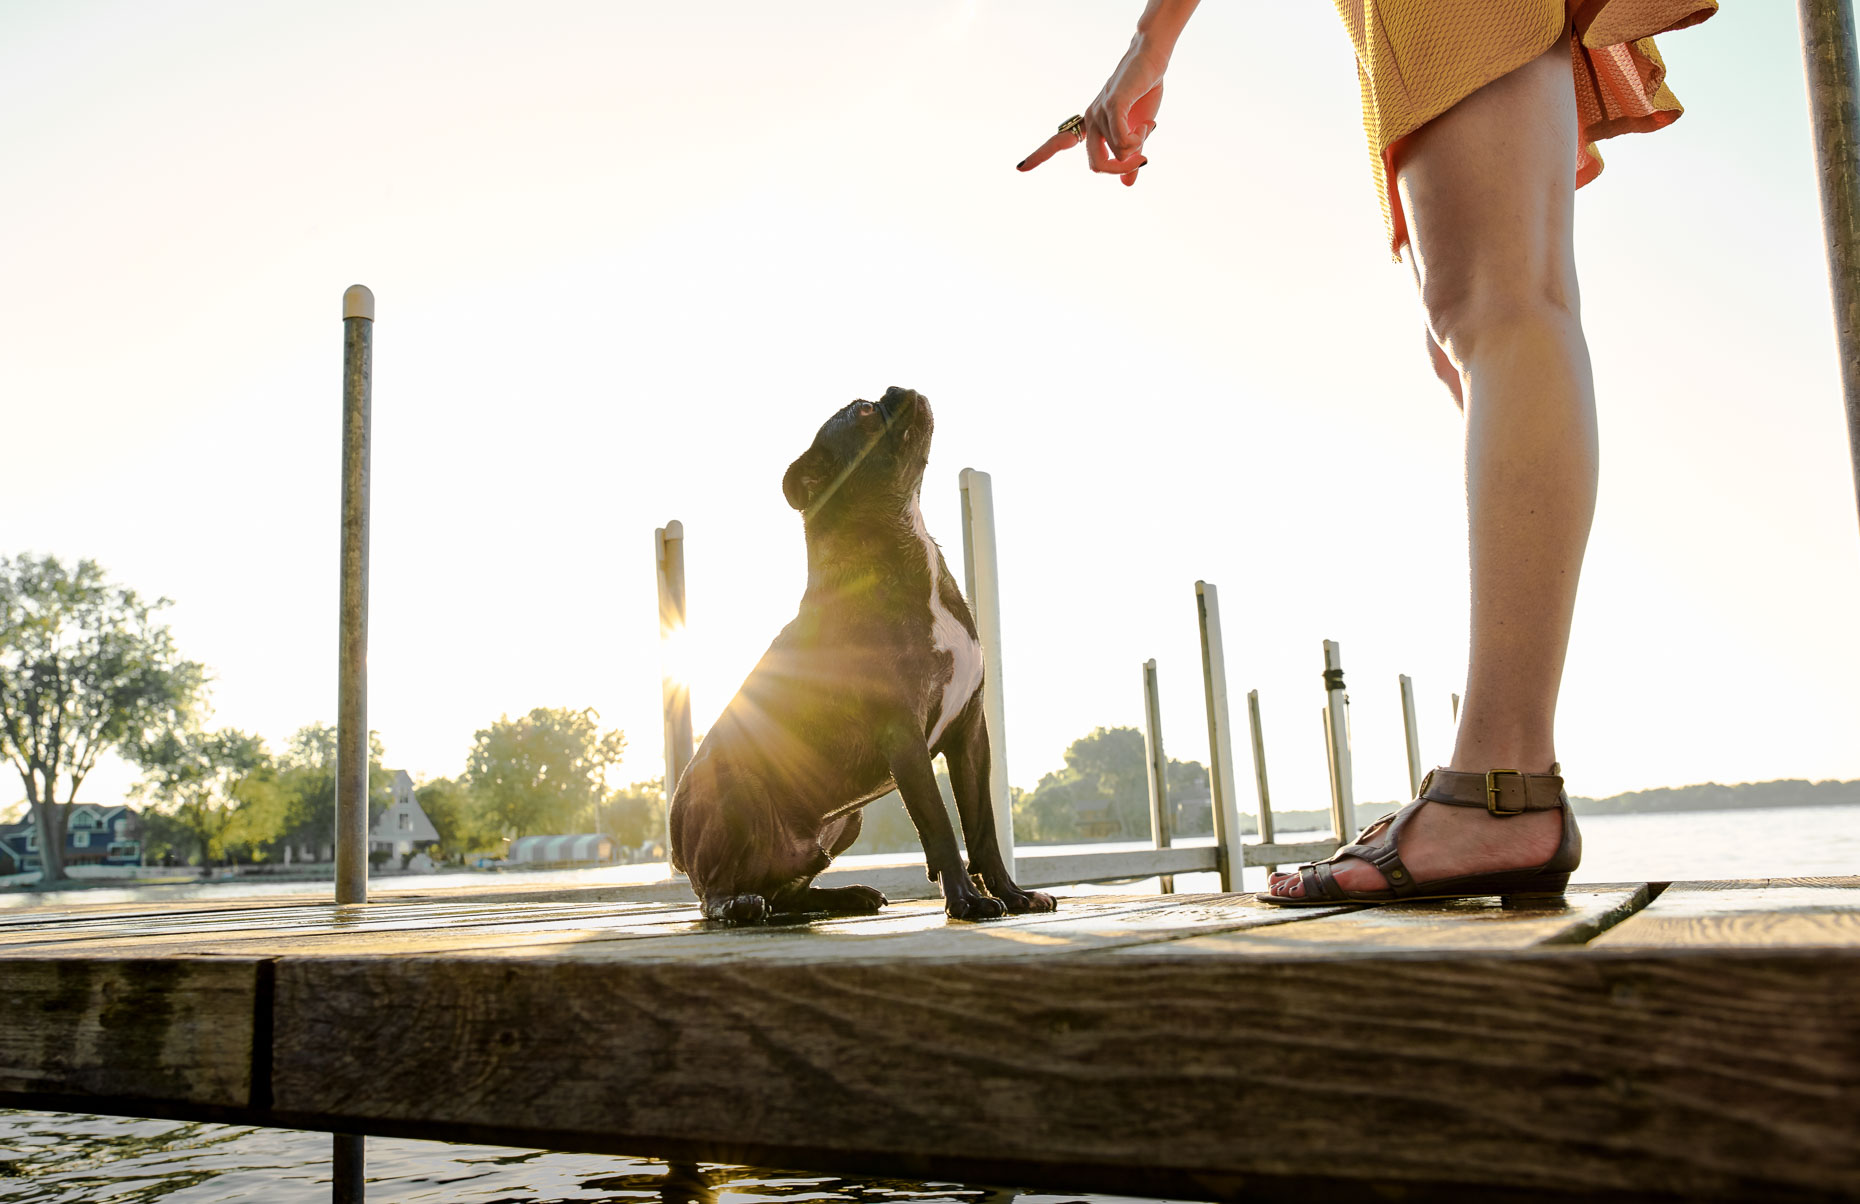 A-woman-teaching-her-little-dog-how-to-sit-as-they-stand-on-the-pier